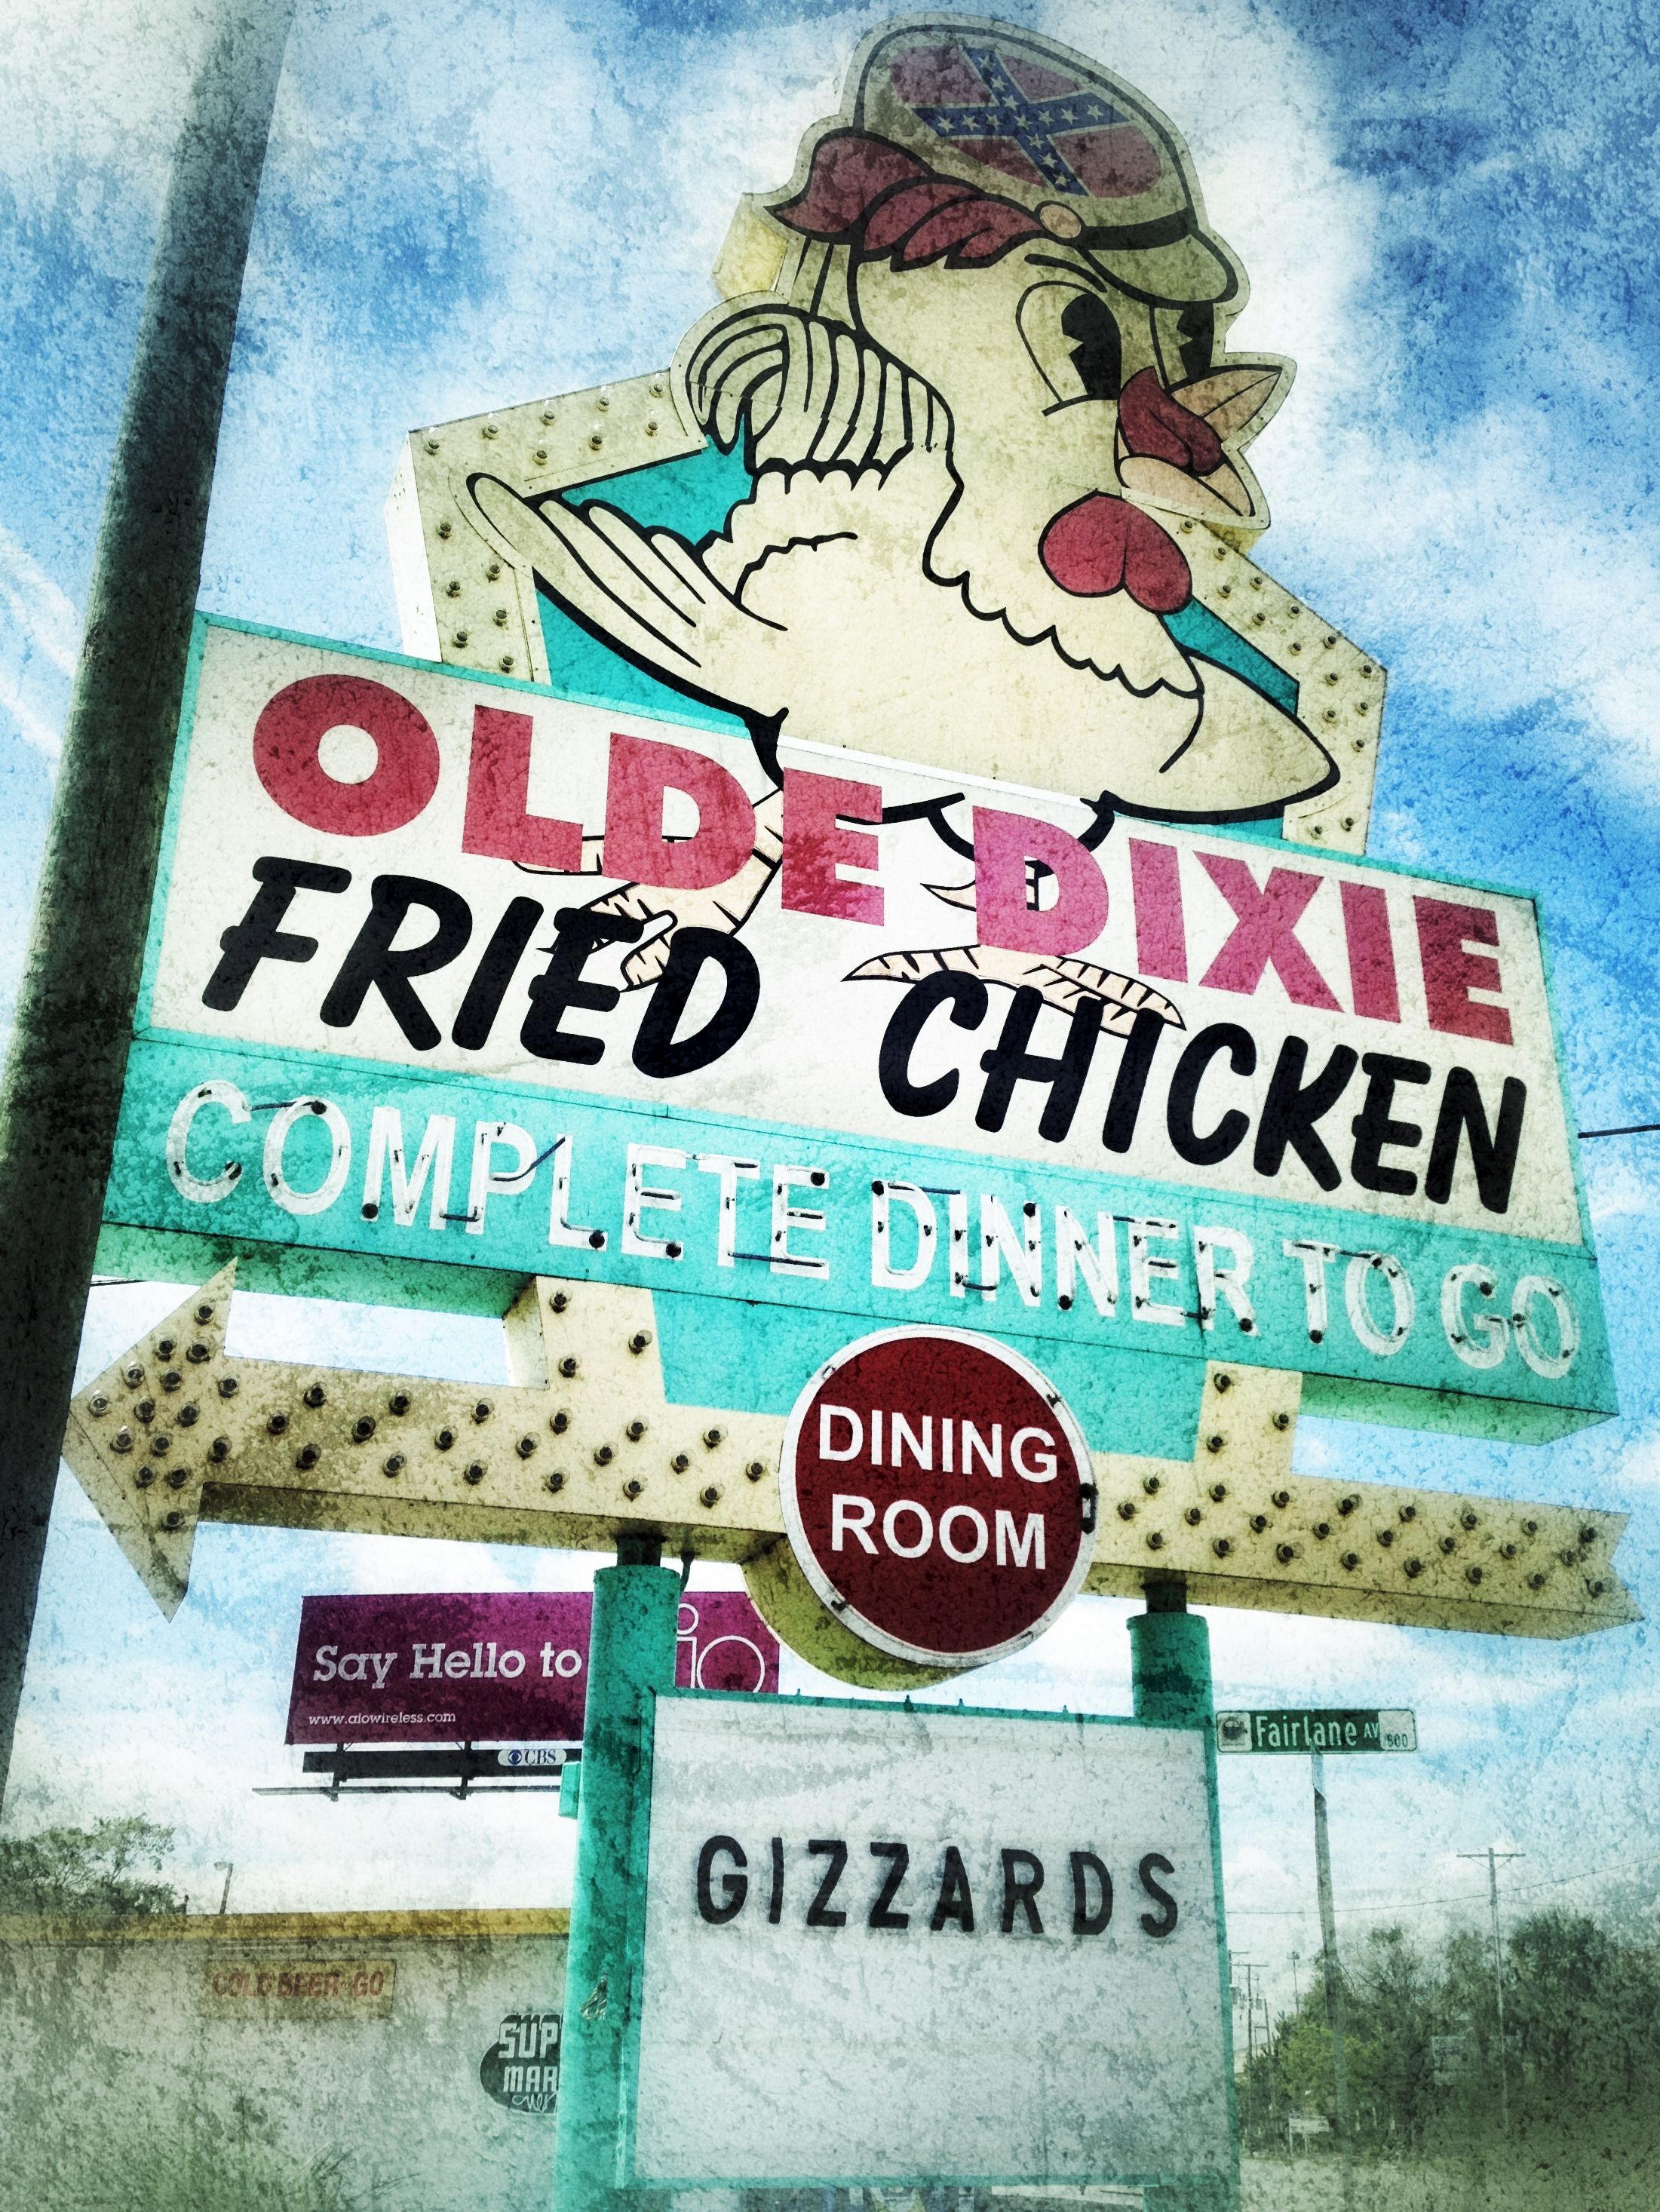 #snapseed #chickenplace